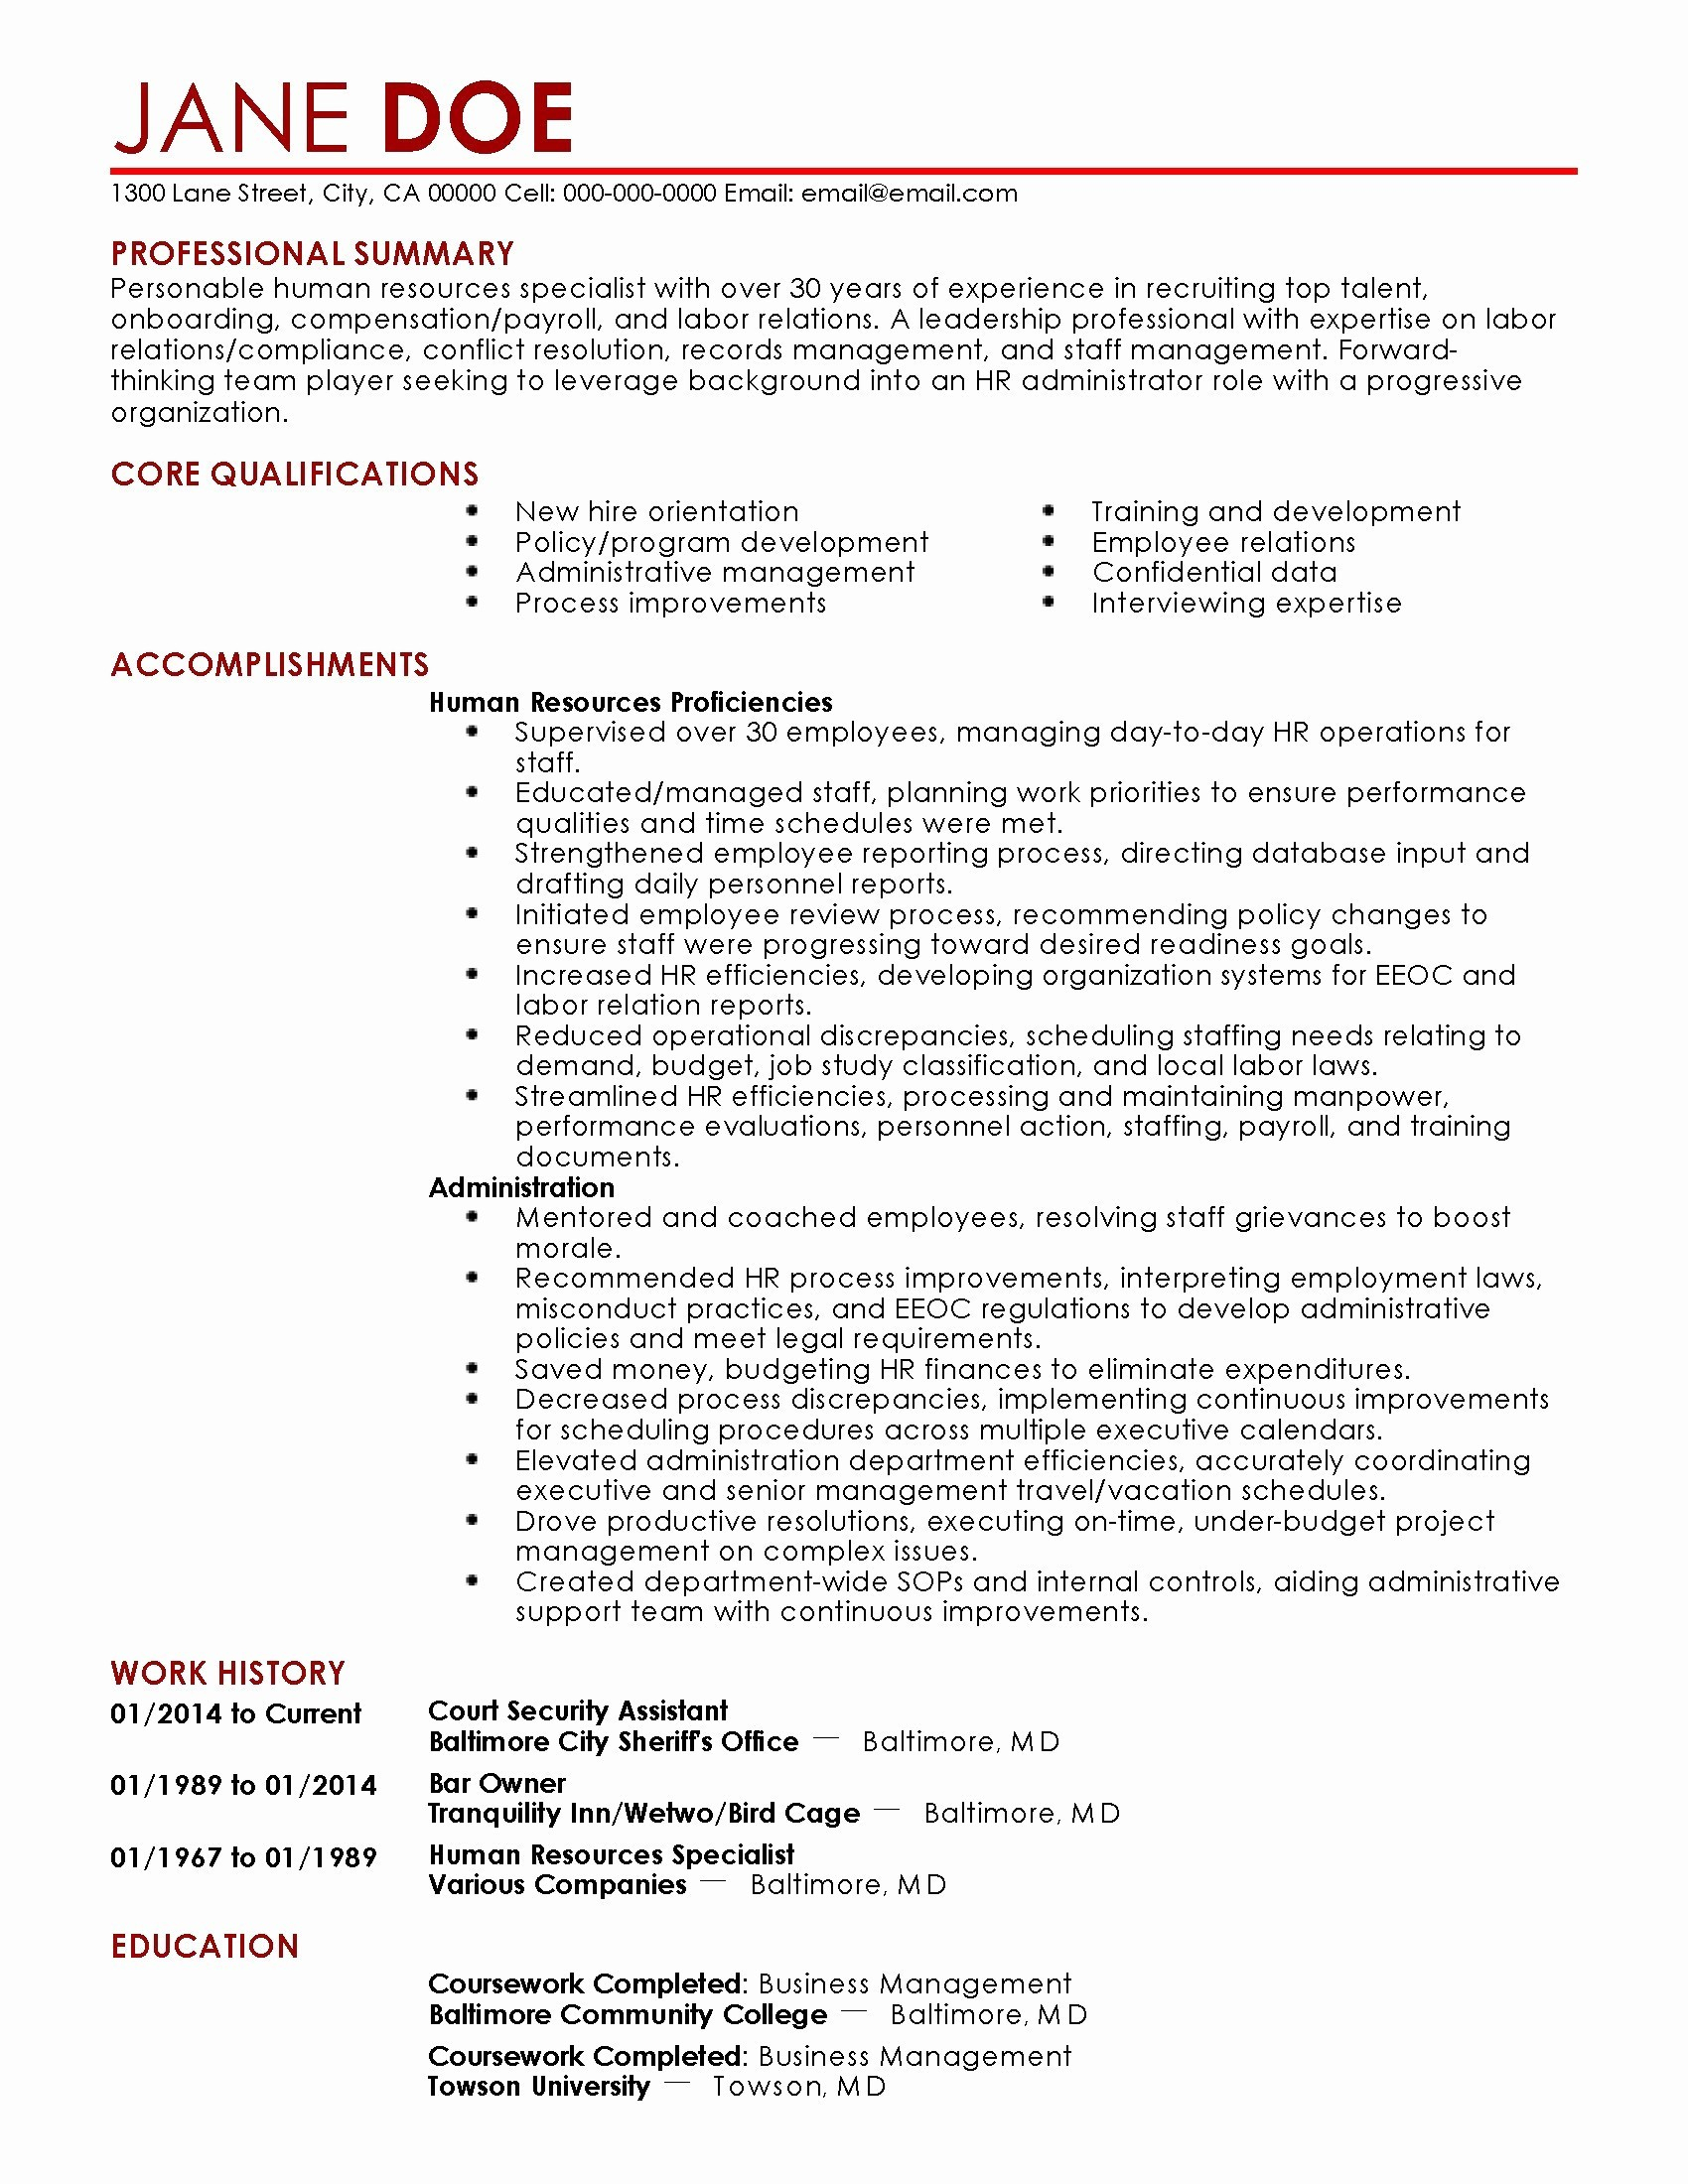 Dental assistant Resume - Medical assistant Resume Template Elegant Dental assistant Resume